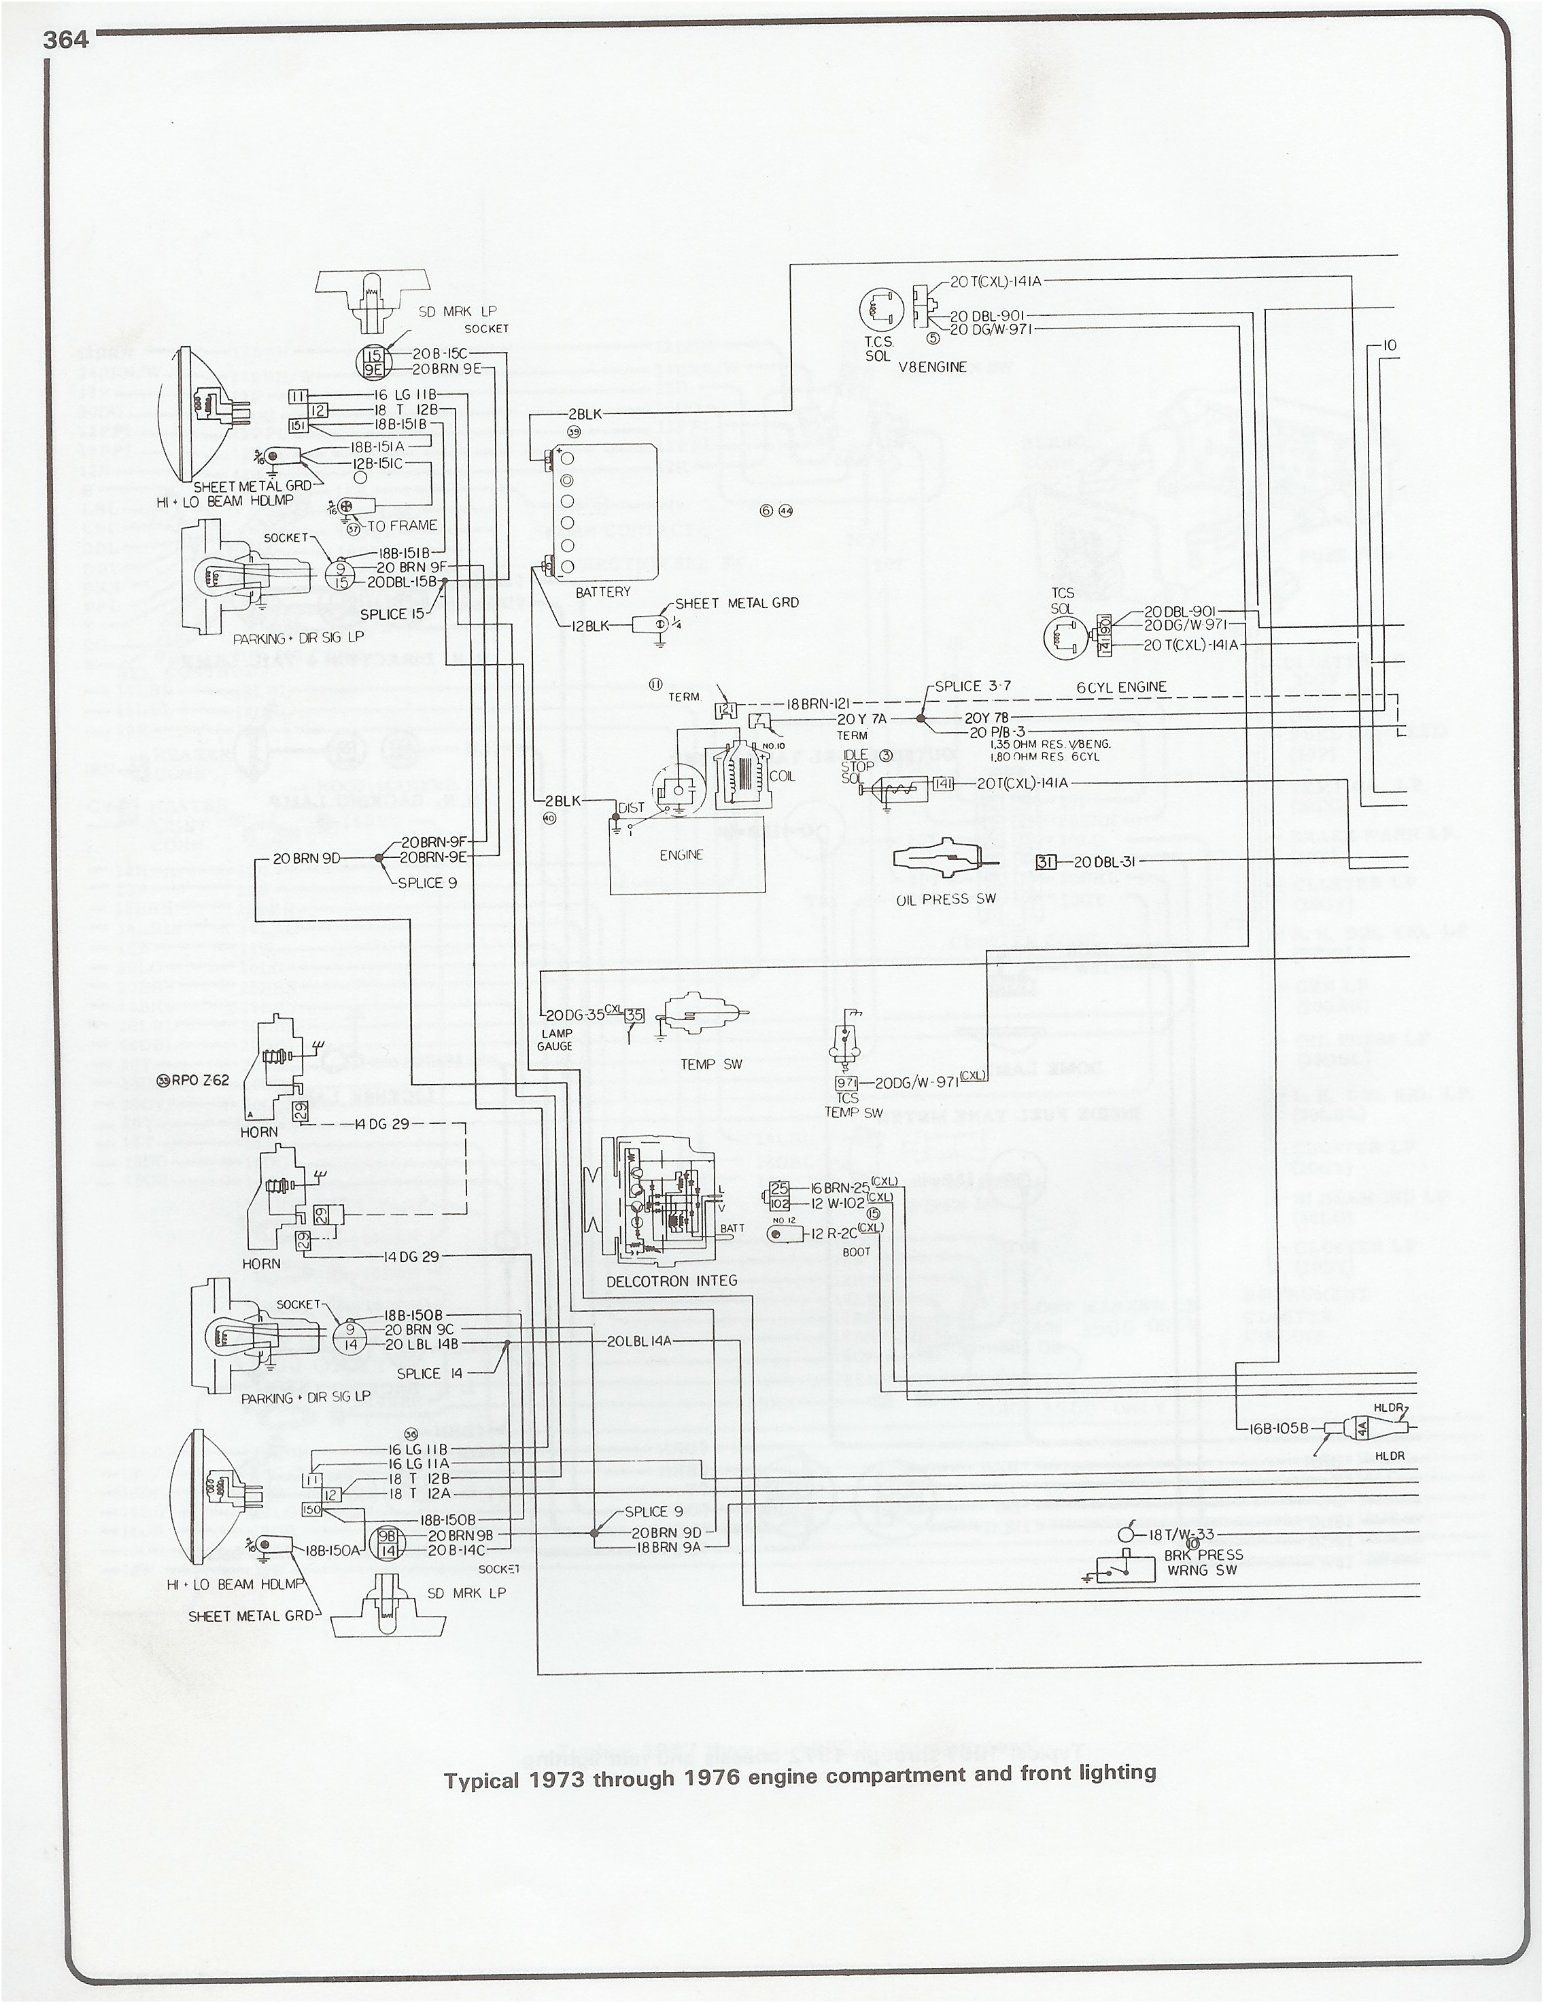 1974 Chevrolet Wiring Diagram - Cg.cotsamzp.ssiew.co • on 85 chevy wiring diagram, 1985 chevy c10 engine, 1985 chevrolet truck diagram, 1985 chevy fuse box diagram, 1985 chevy truck fuse box, 1985 chevy truck wiring harness, 1985 chevy suburban belt diagram, 1985 dodge dakota wiring diagram, 1985 chevy c10 transmission, 1999 mazda 626 wiring diagram, 1985 chevy c10 wheels, 1998 chevy venture wiring diagram, 1985 chevy c10 regulator, 1985 chevy c10 seats, 1985 chevy c10 electrical, 1985 chevy c10 carburetor, 63 chevy wiring diagram, 1985 chevy c10 frame, 1985 chevrolet wiring diagram, 1985 chevy c10 fan belt,